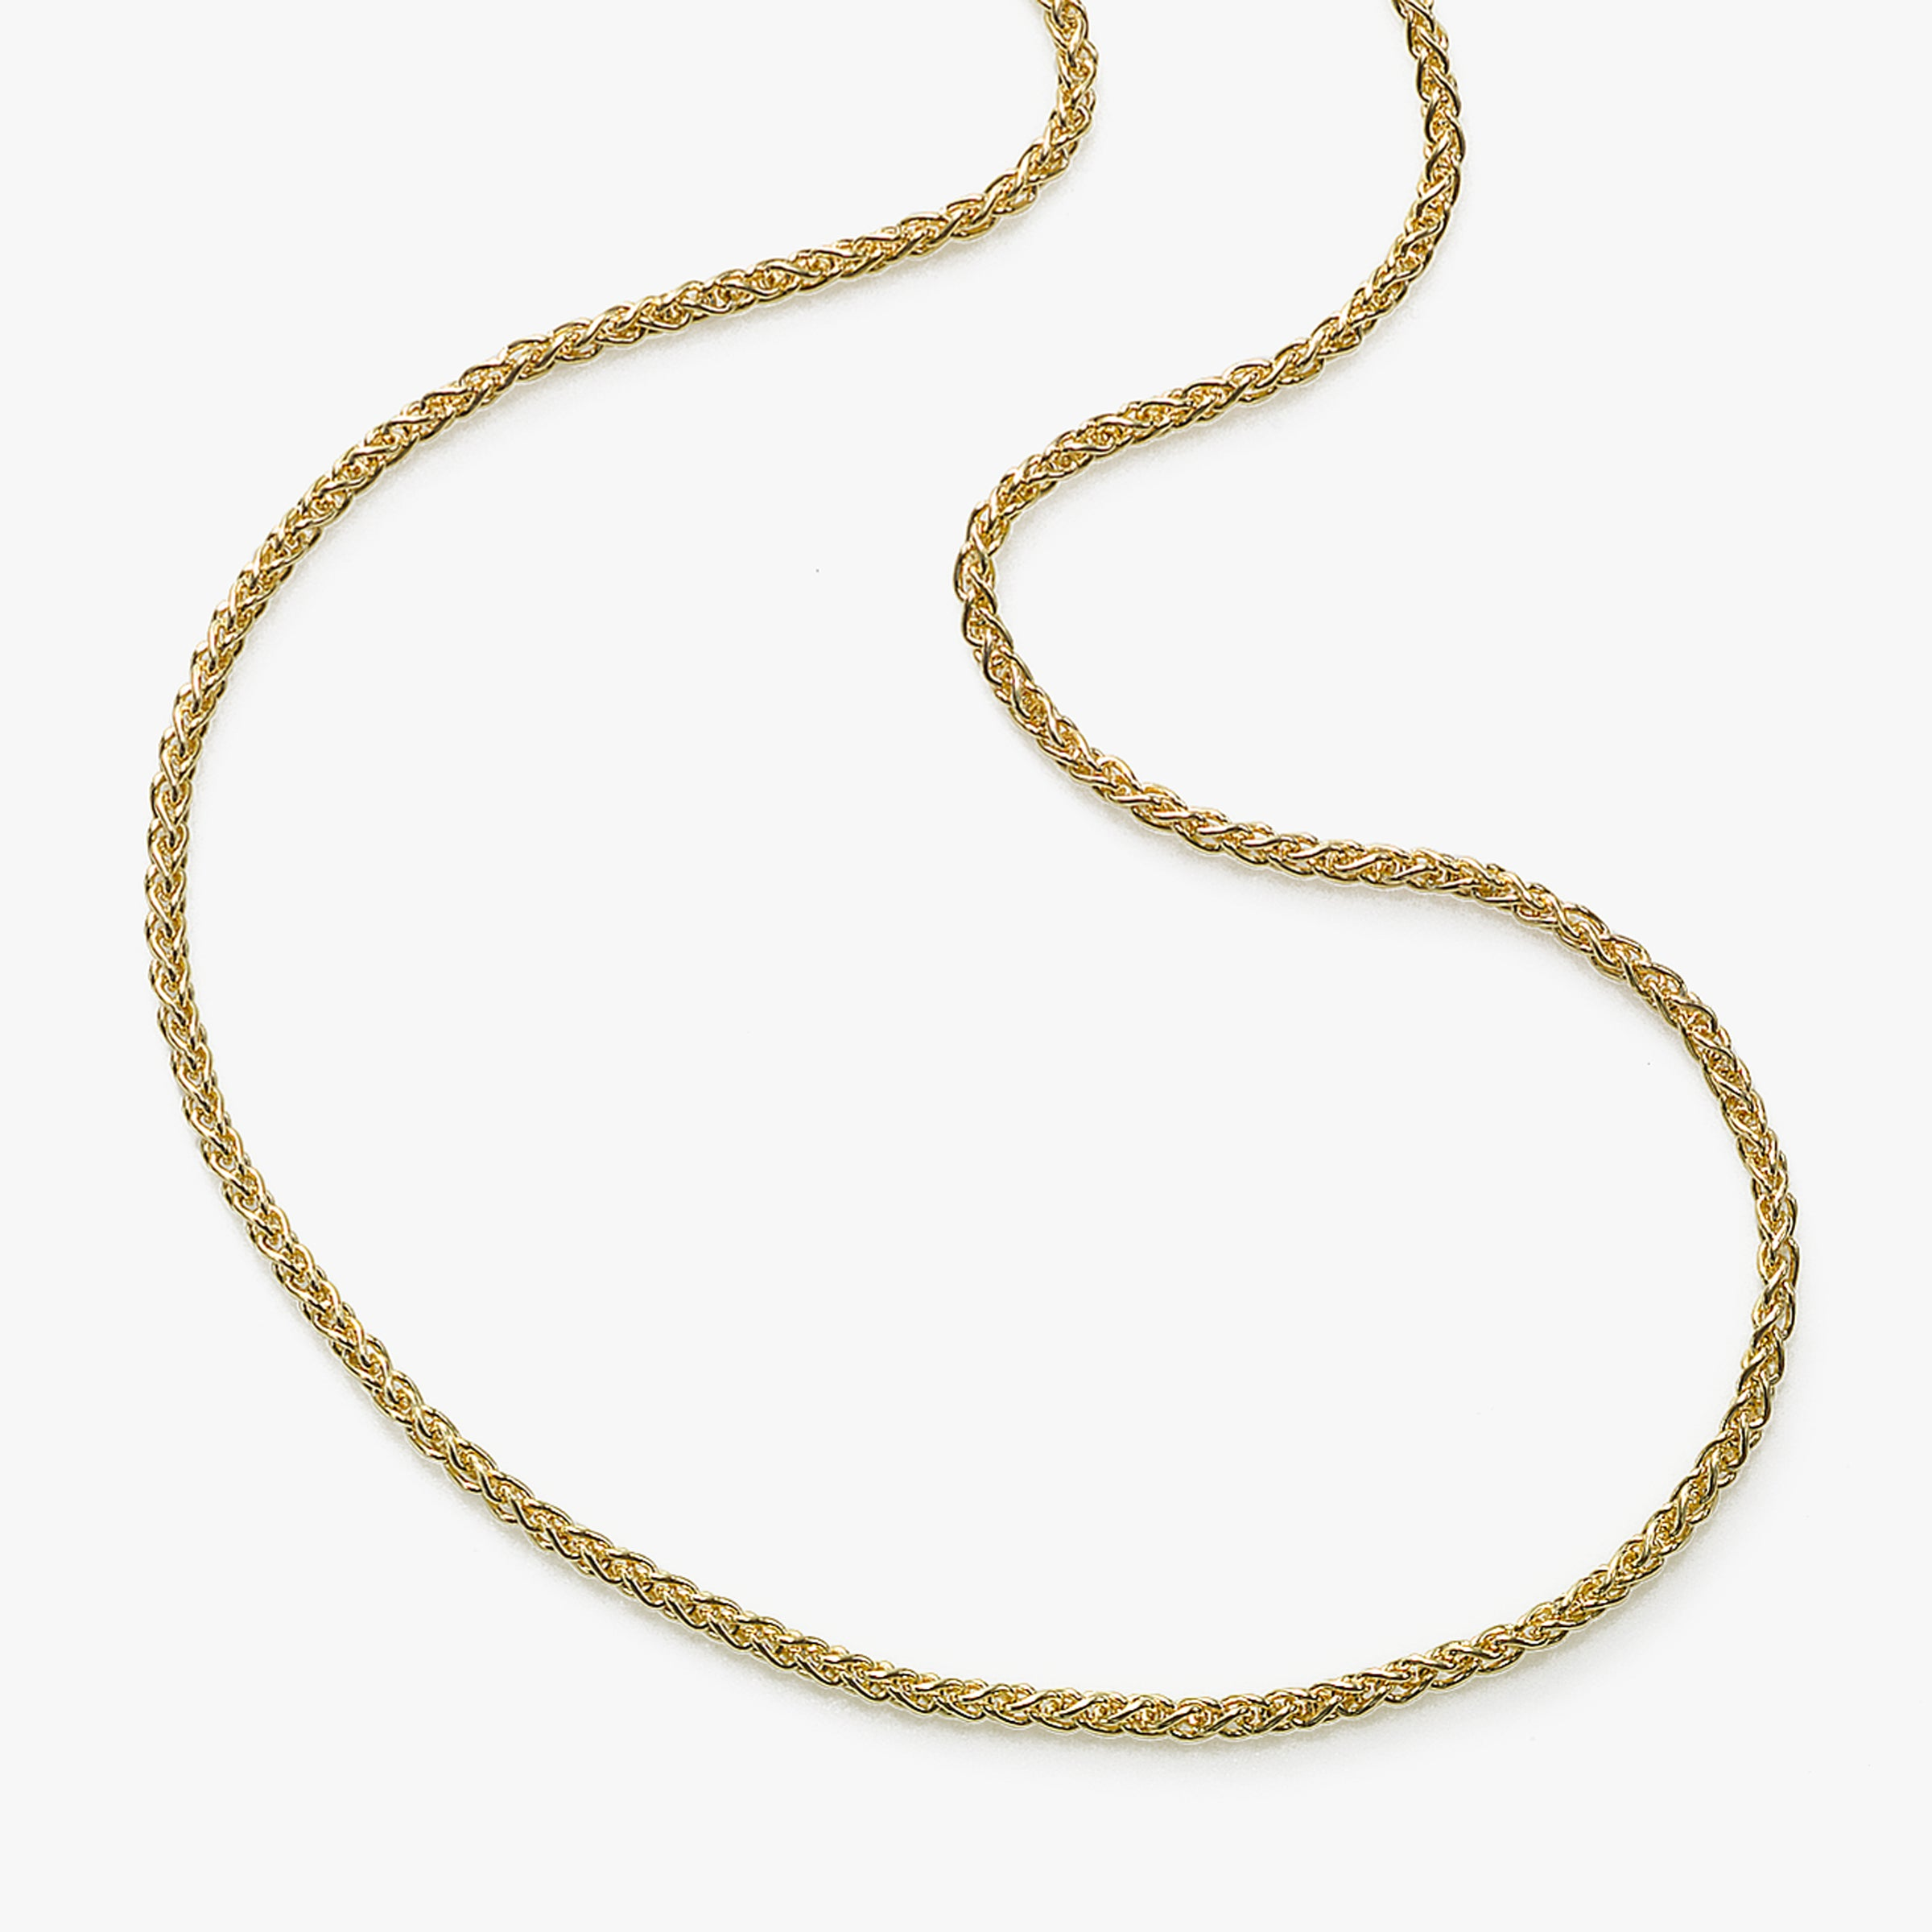 Round Wheat Chain, 18 Inches, 14K Yellow Gold